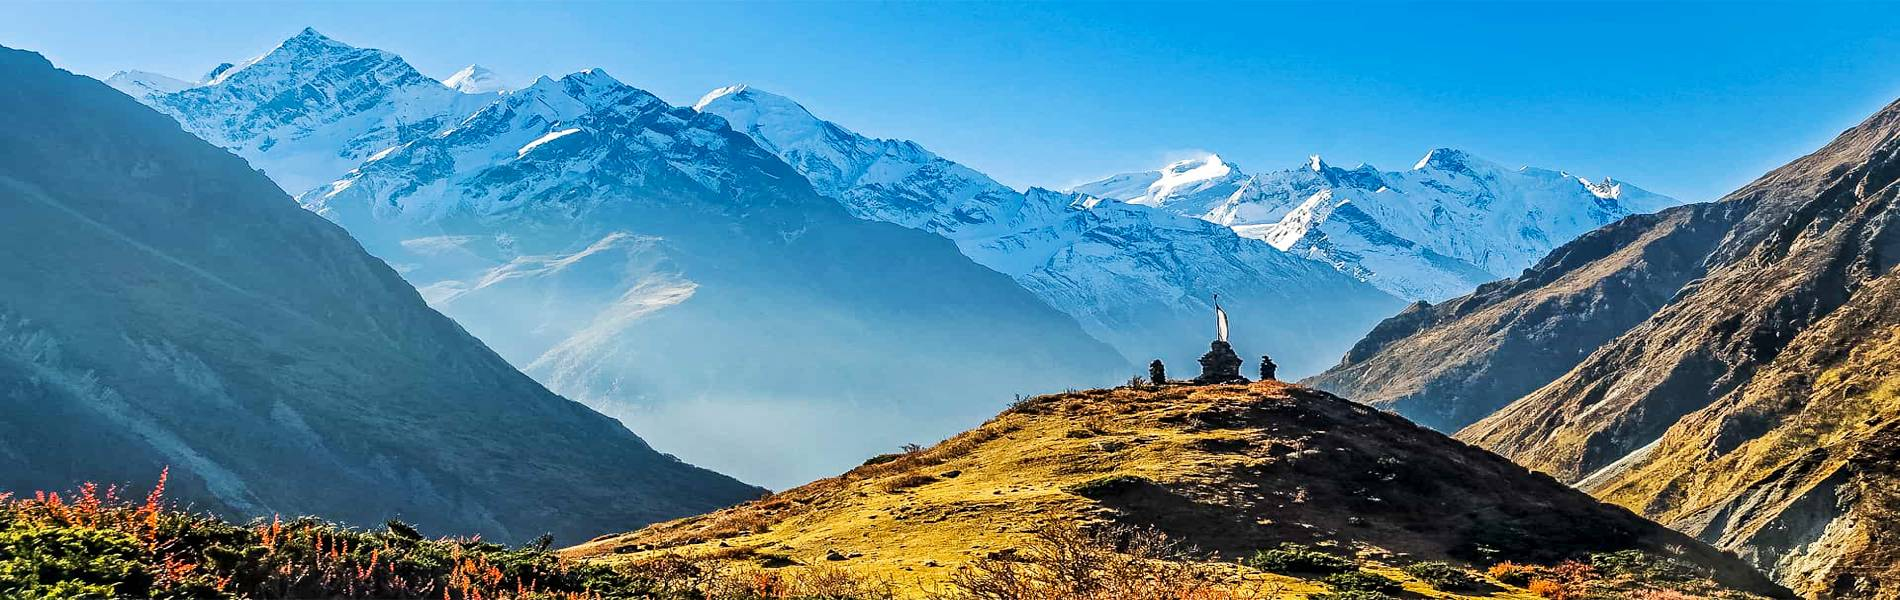 MANASLU TSUM VALLEY TREK - 23 DAYS